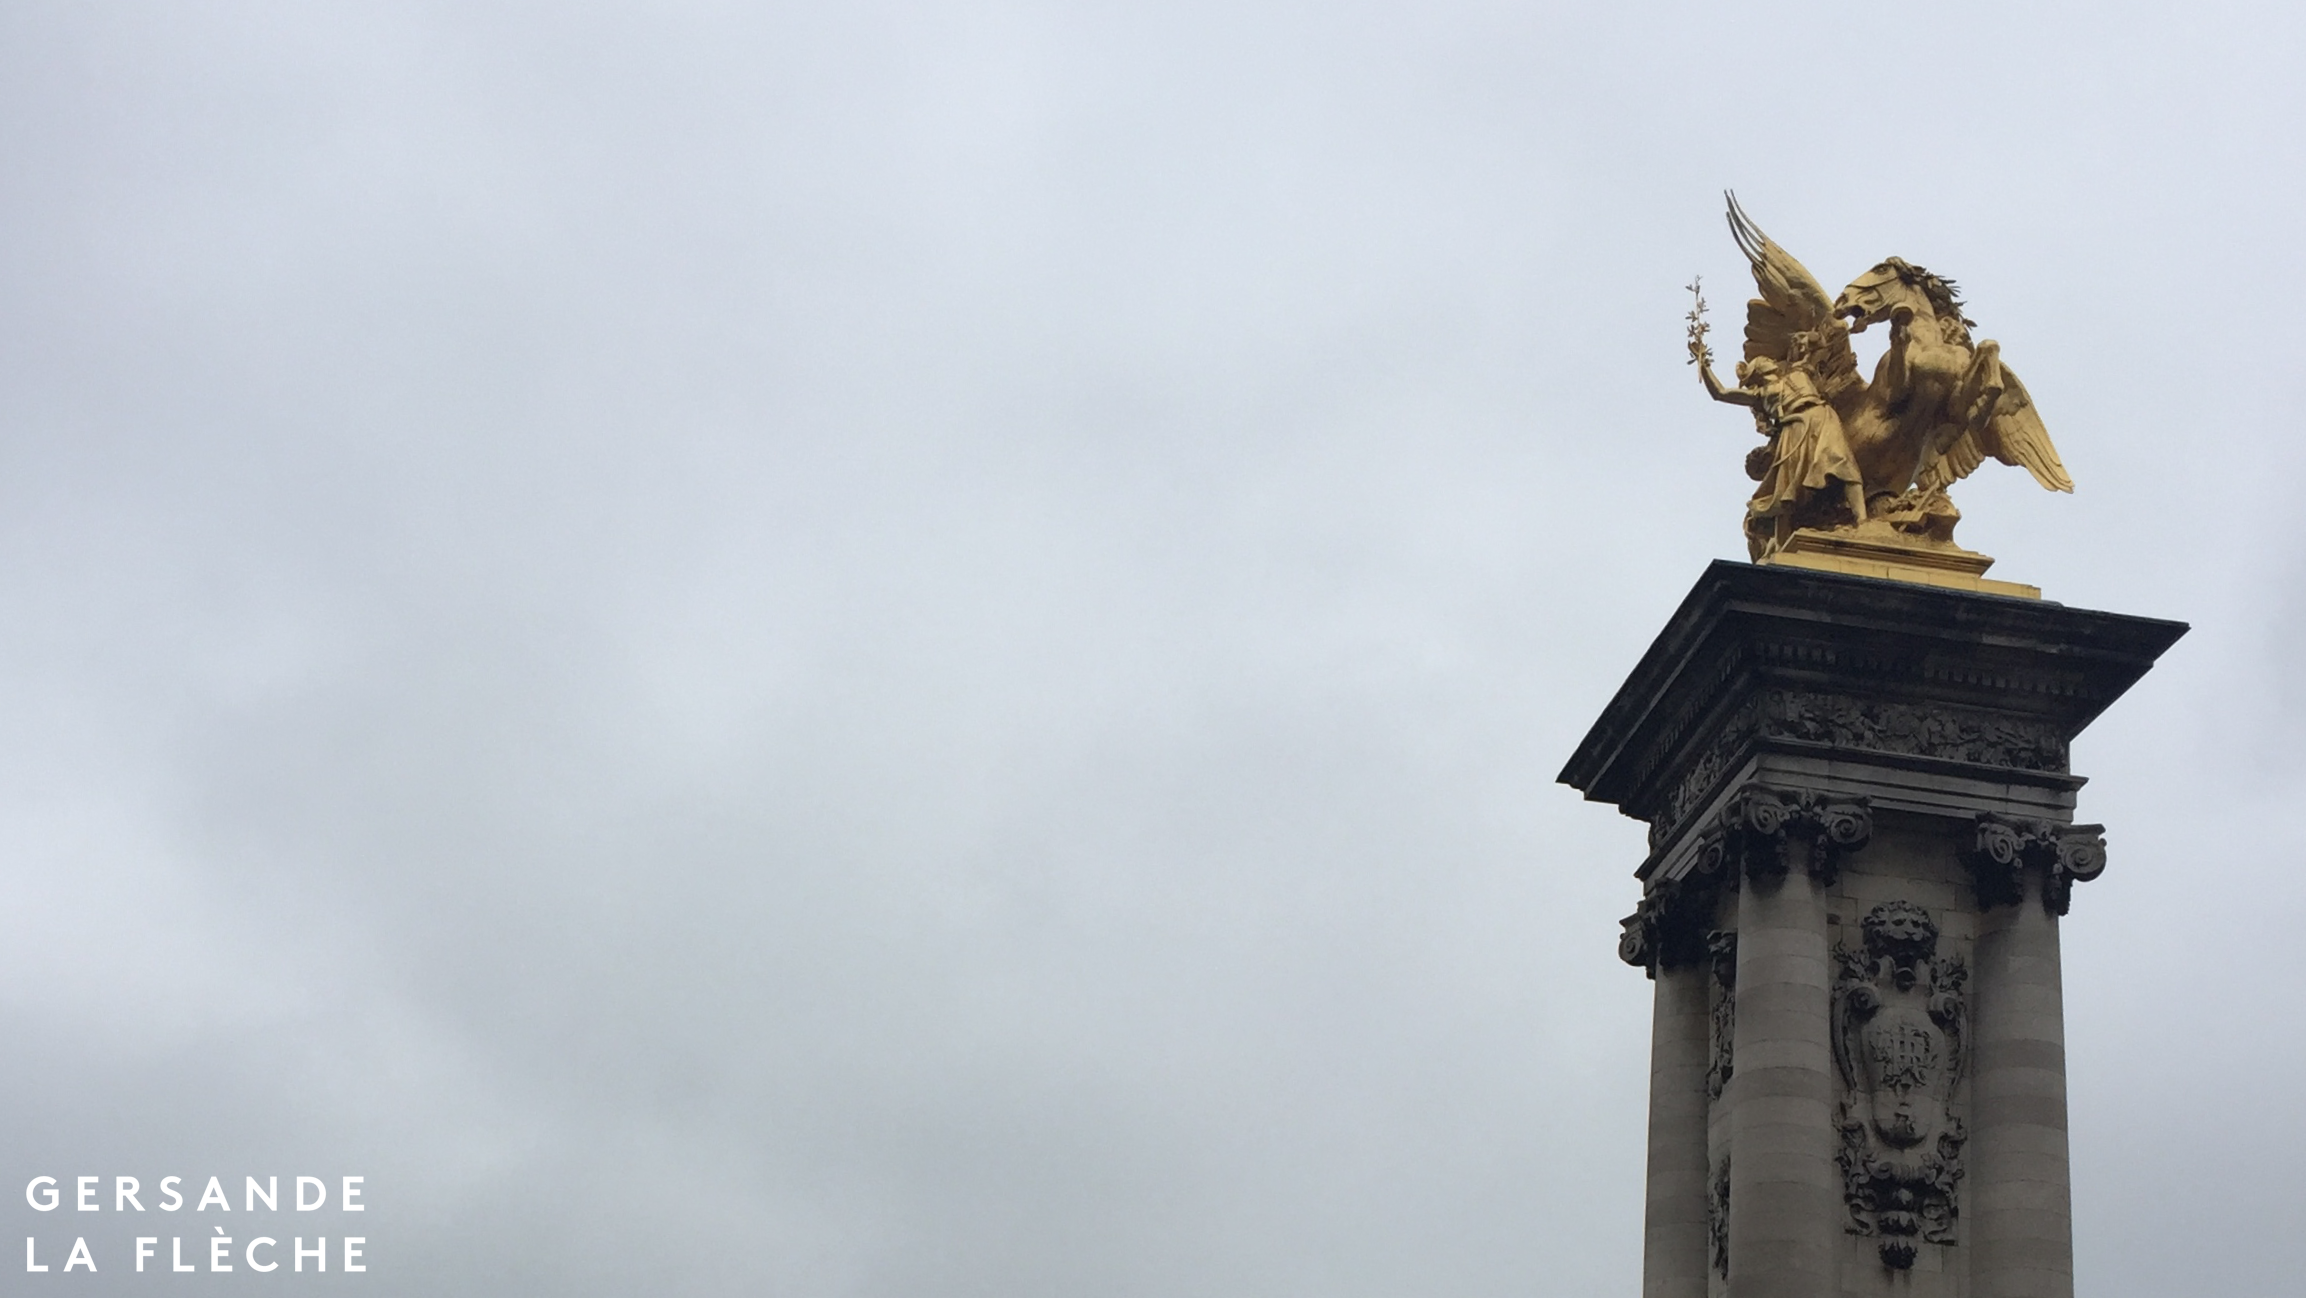 A picture of one of the statues from Pont de la Concorde set against the grey November sky.